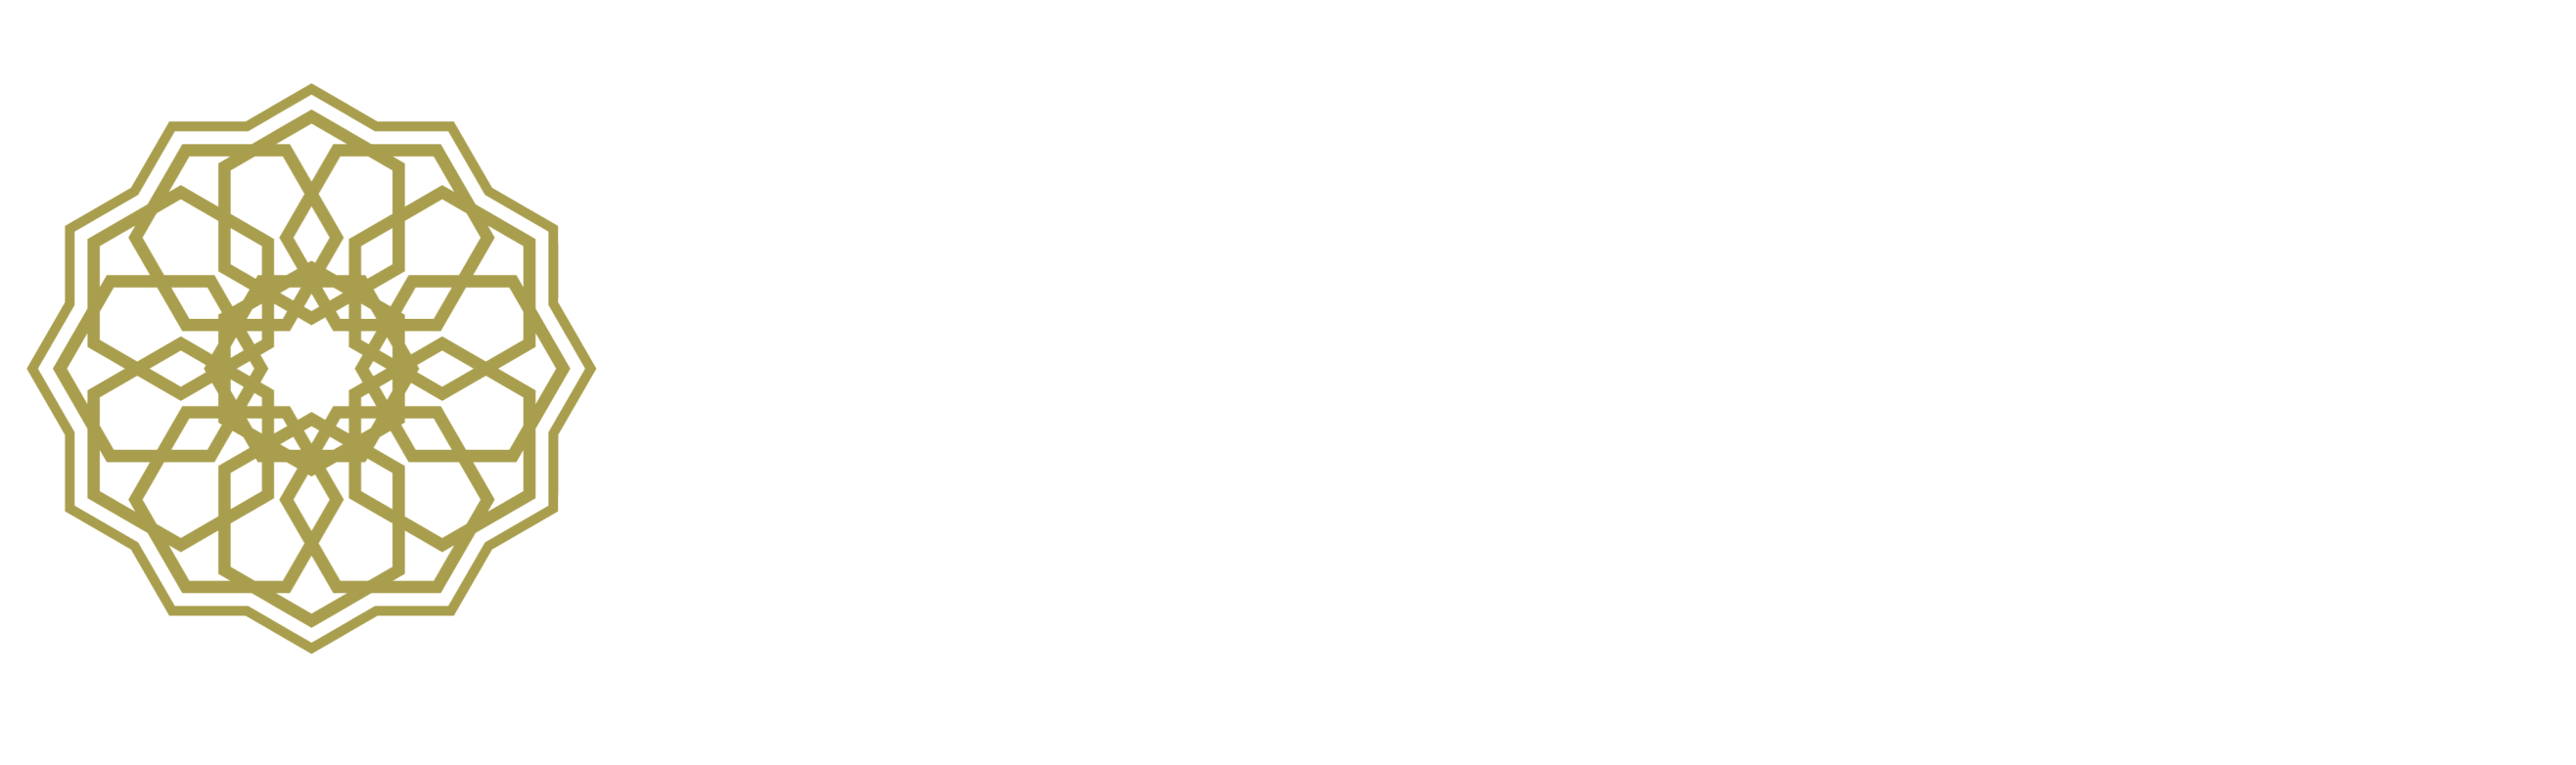 AMENDS Global Fellows